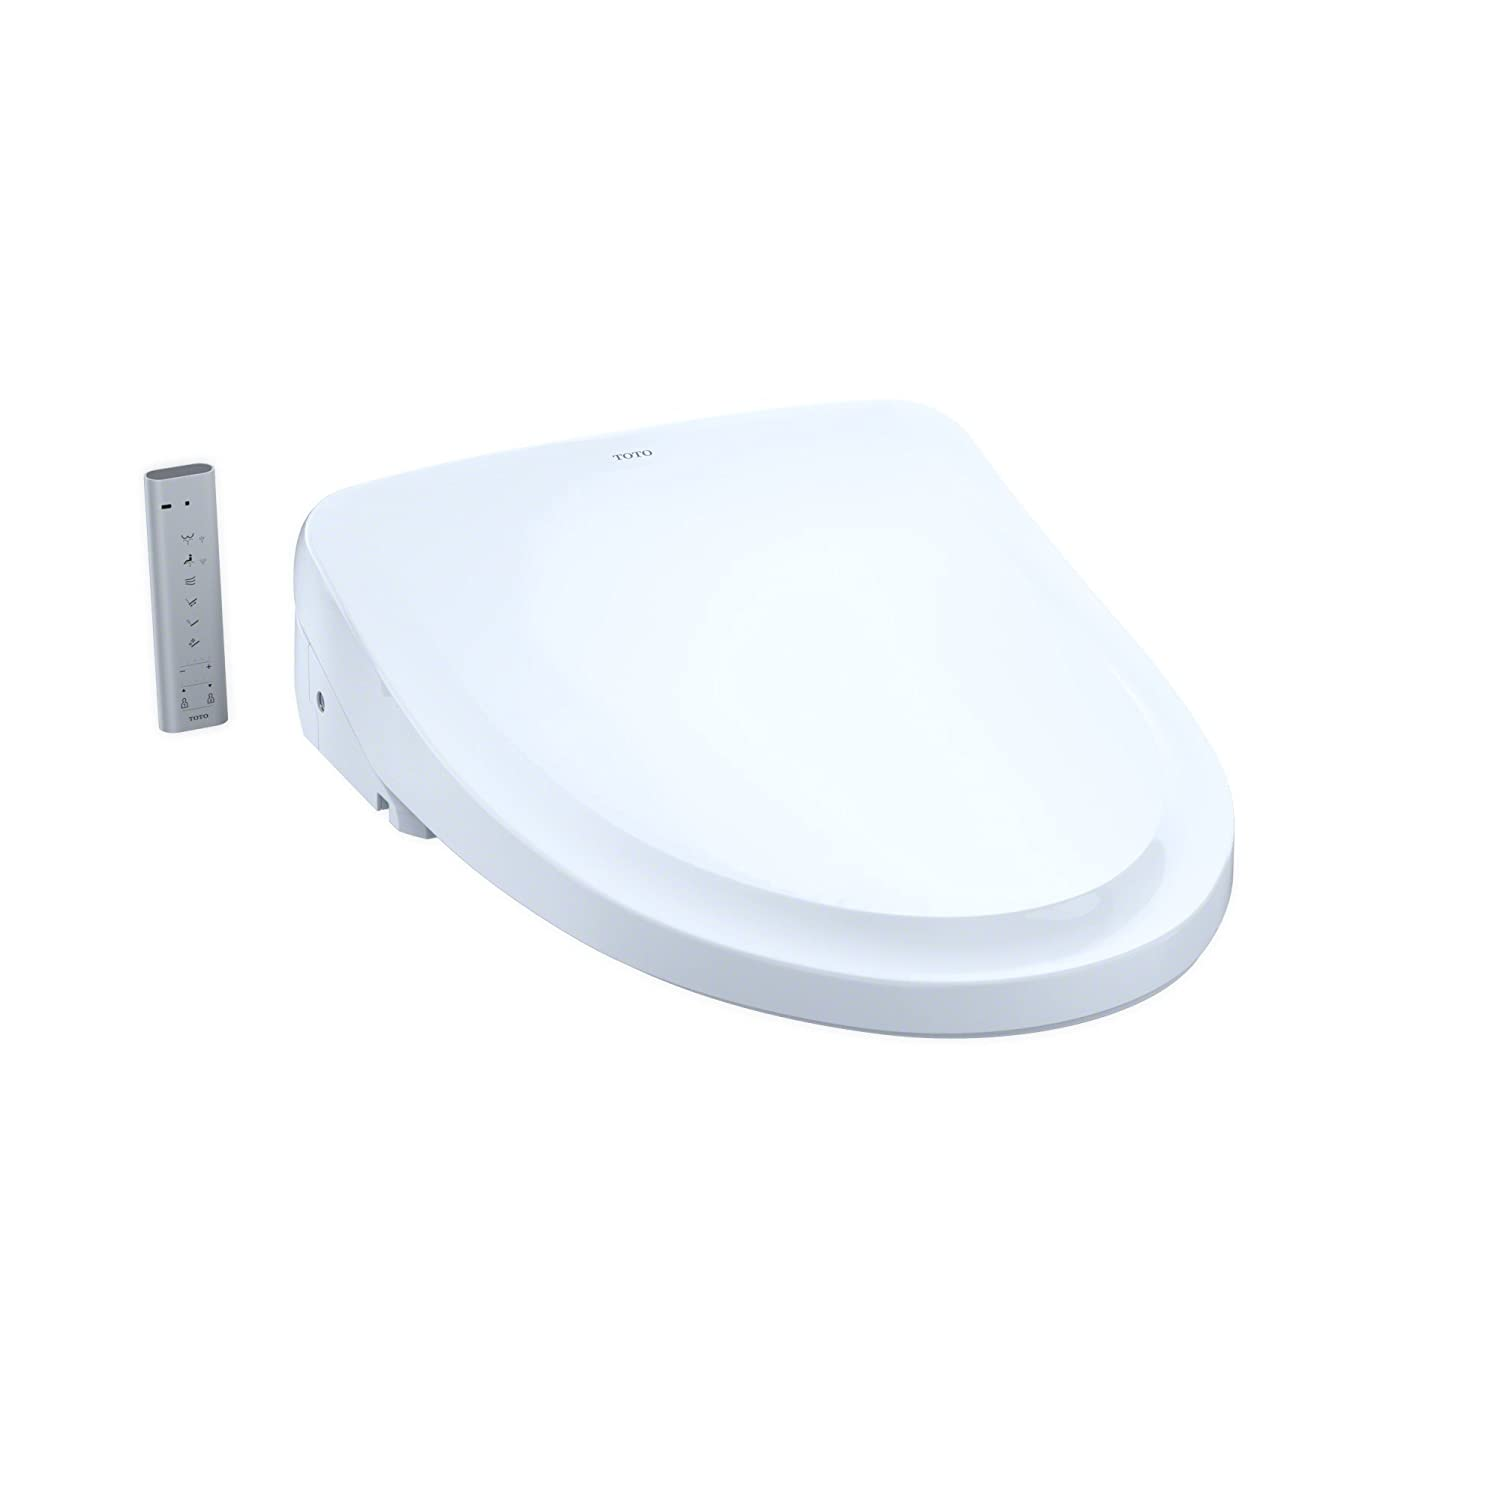 TOTO SW3044#01 S500e WASHLET Electronic Bidet Toilet Seat with ...